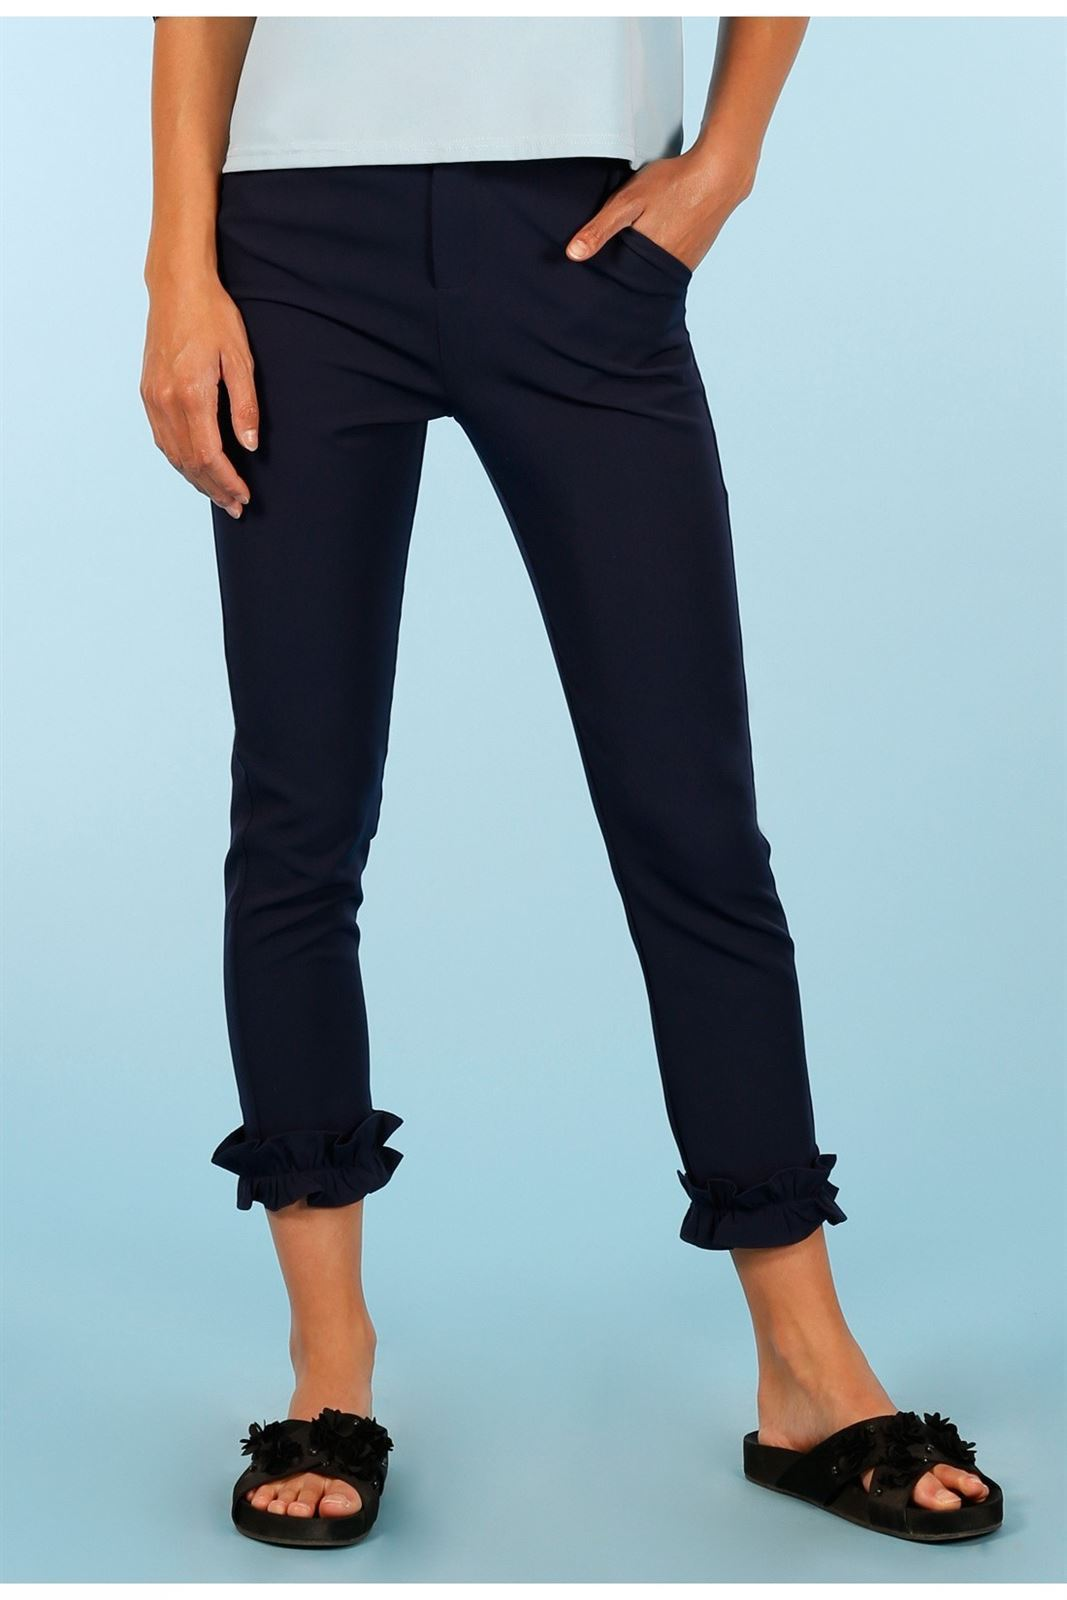 NAVY TROUSERS MINUETO - Imagen 1